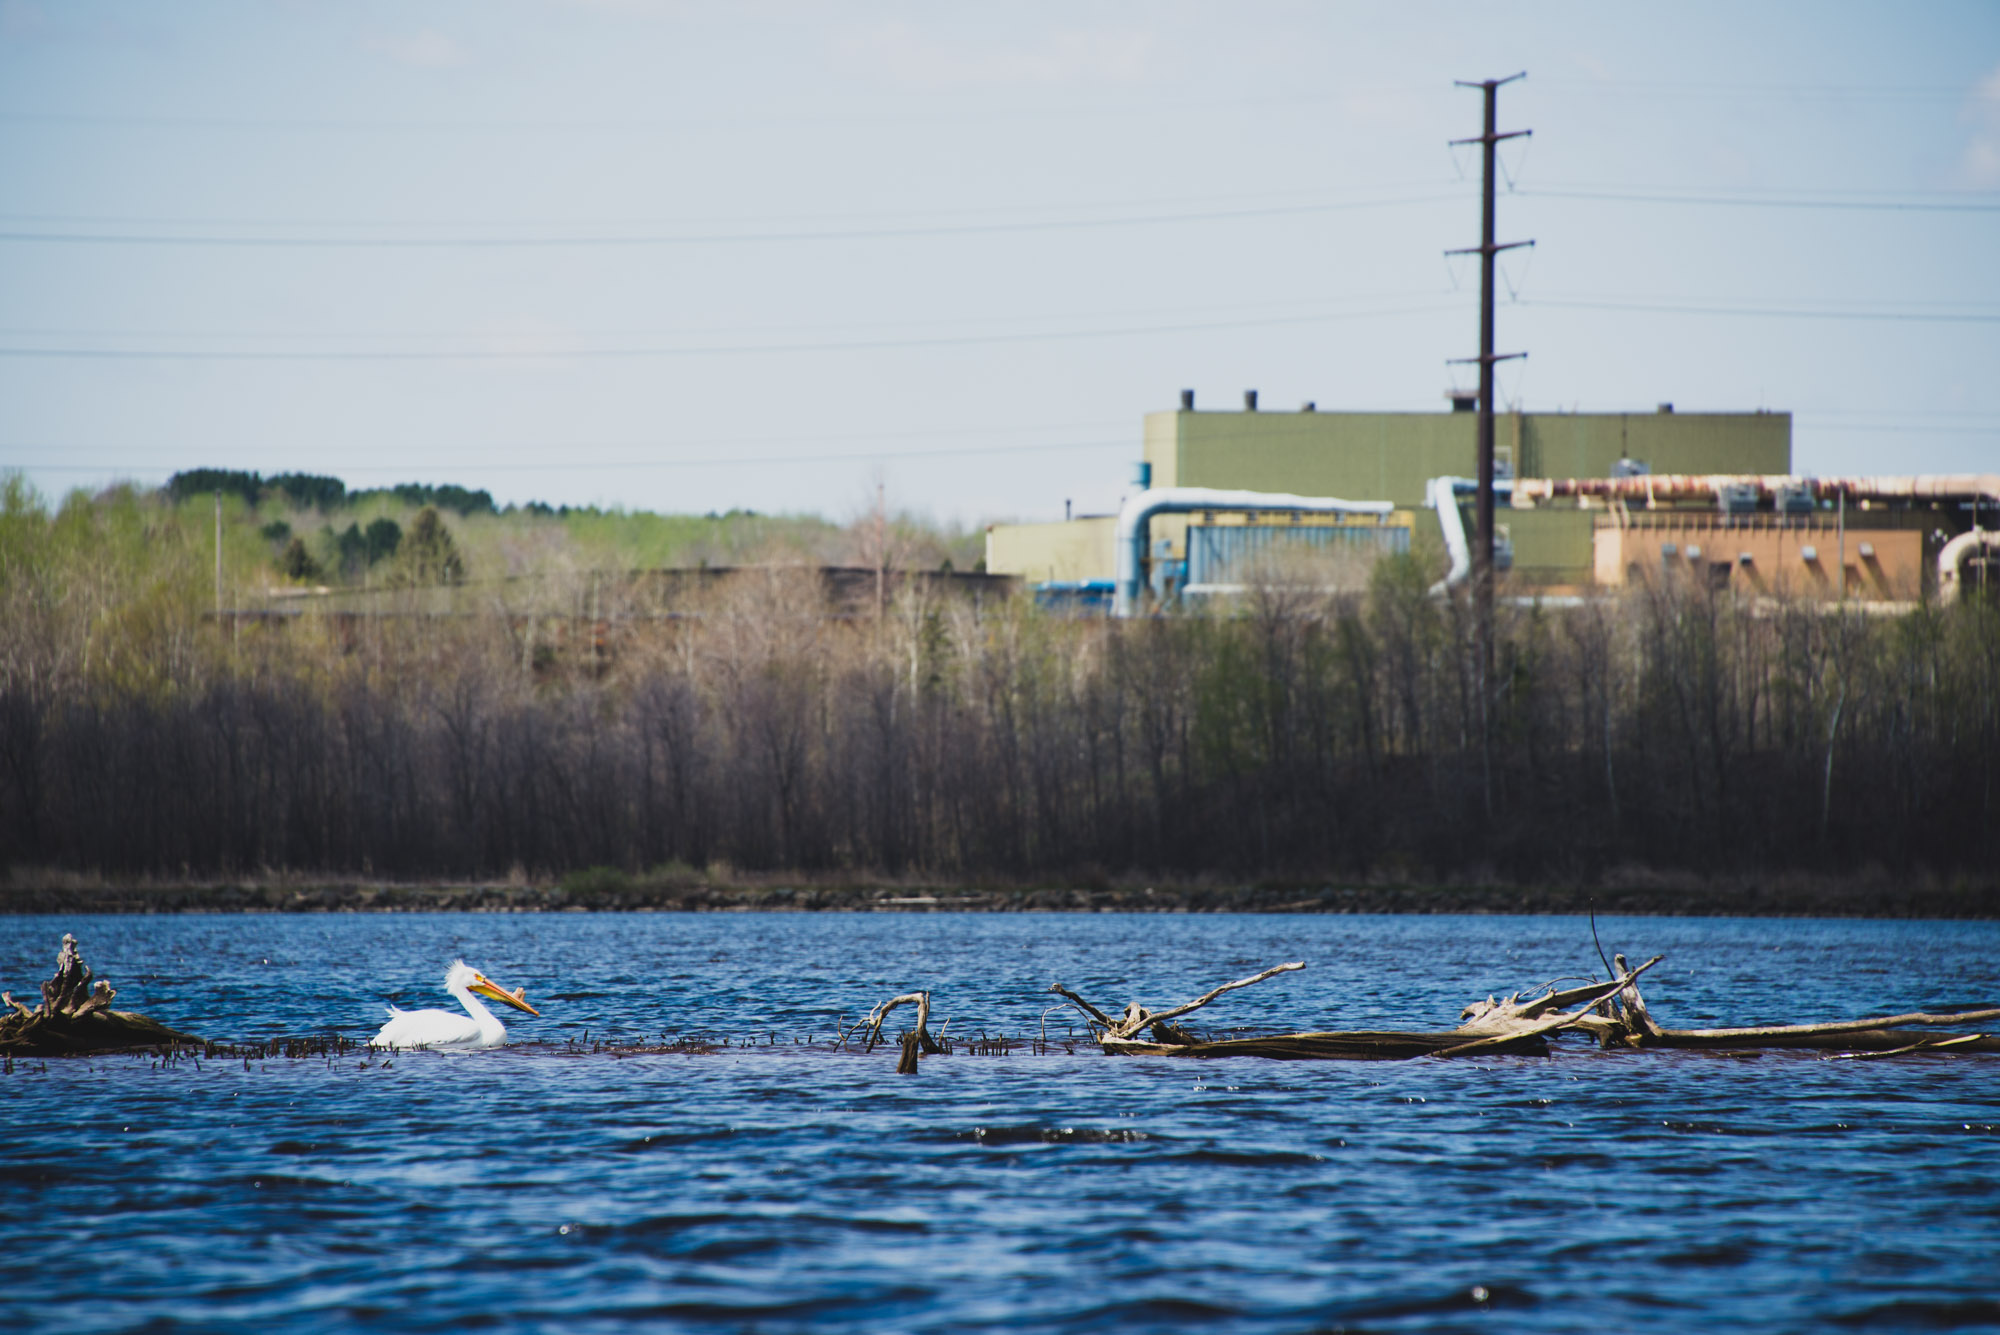 A pelican rests in front of a processing plant on the St. Louis River Estuary. Image courtesy of Alex Messenger Photography.